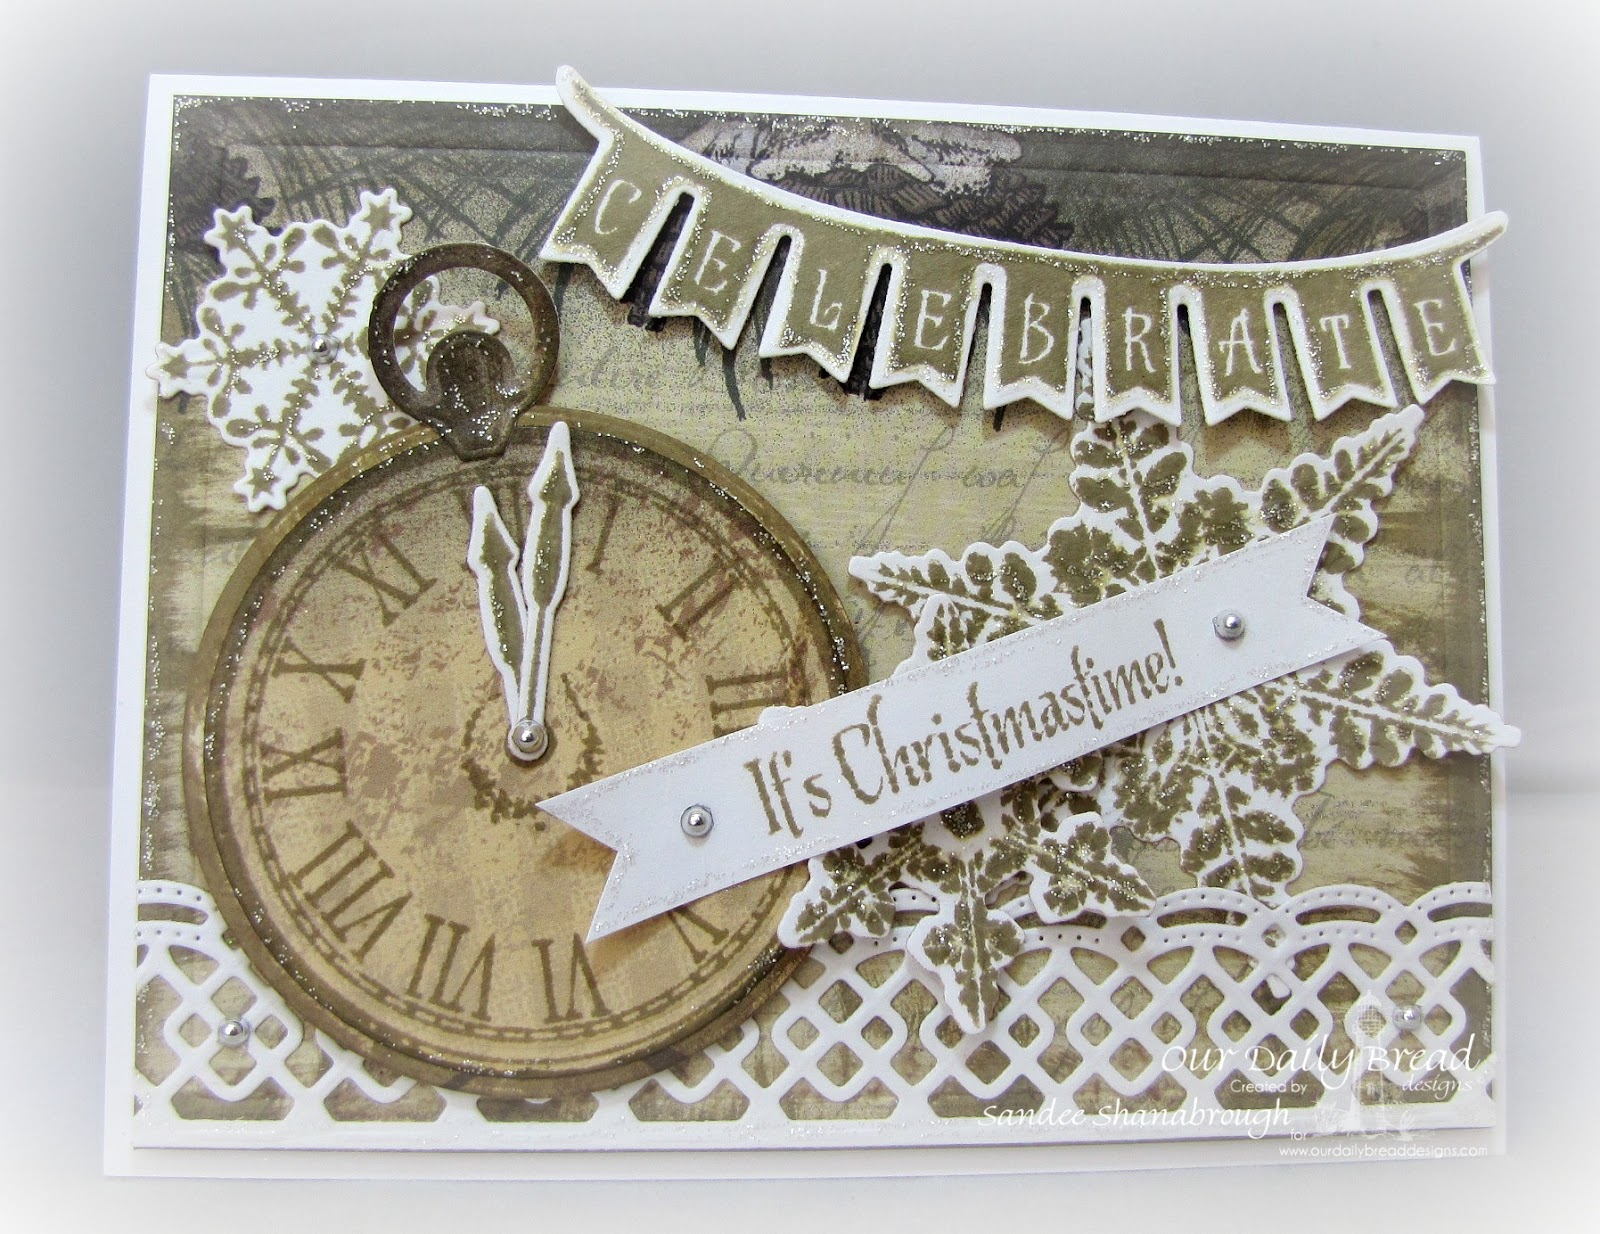 Stamps - Our Daily Bread Designs God's Timing, ODBD Custom Circle Ornament Dies, ODBD Custom Matting Circle Dies, ODBD Custom Beautiful Borders Dies, ODBD Christmas Paper Collection 2013, Sparkling Snowflake, Christmas Pennant Swag, ODBD Custom Swag Die, ODBD Custom Snowflake Dies